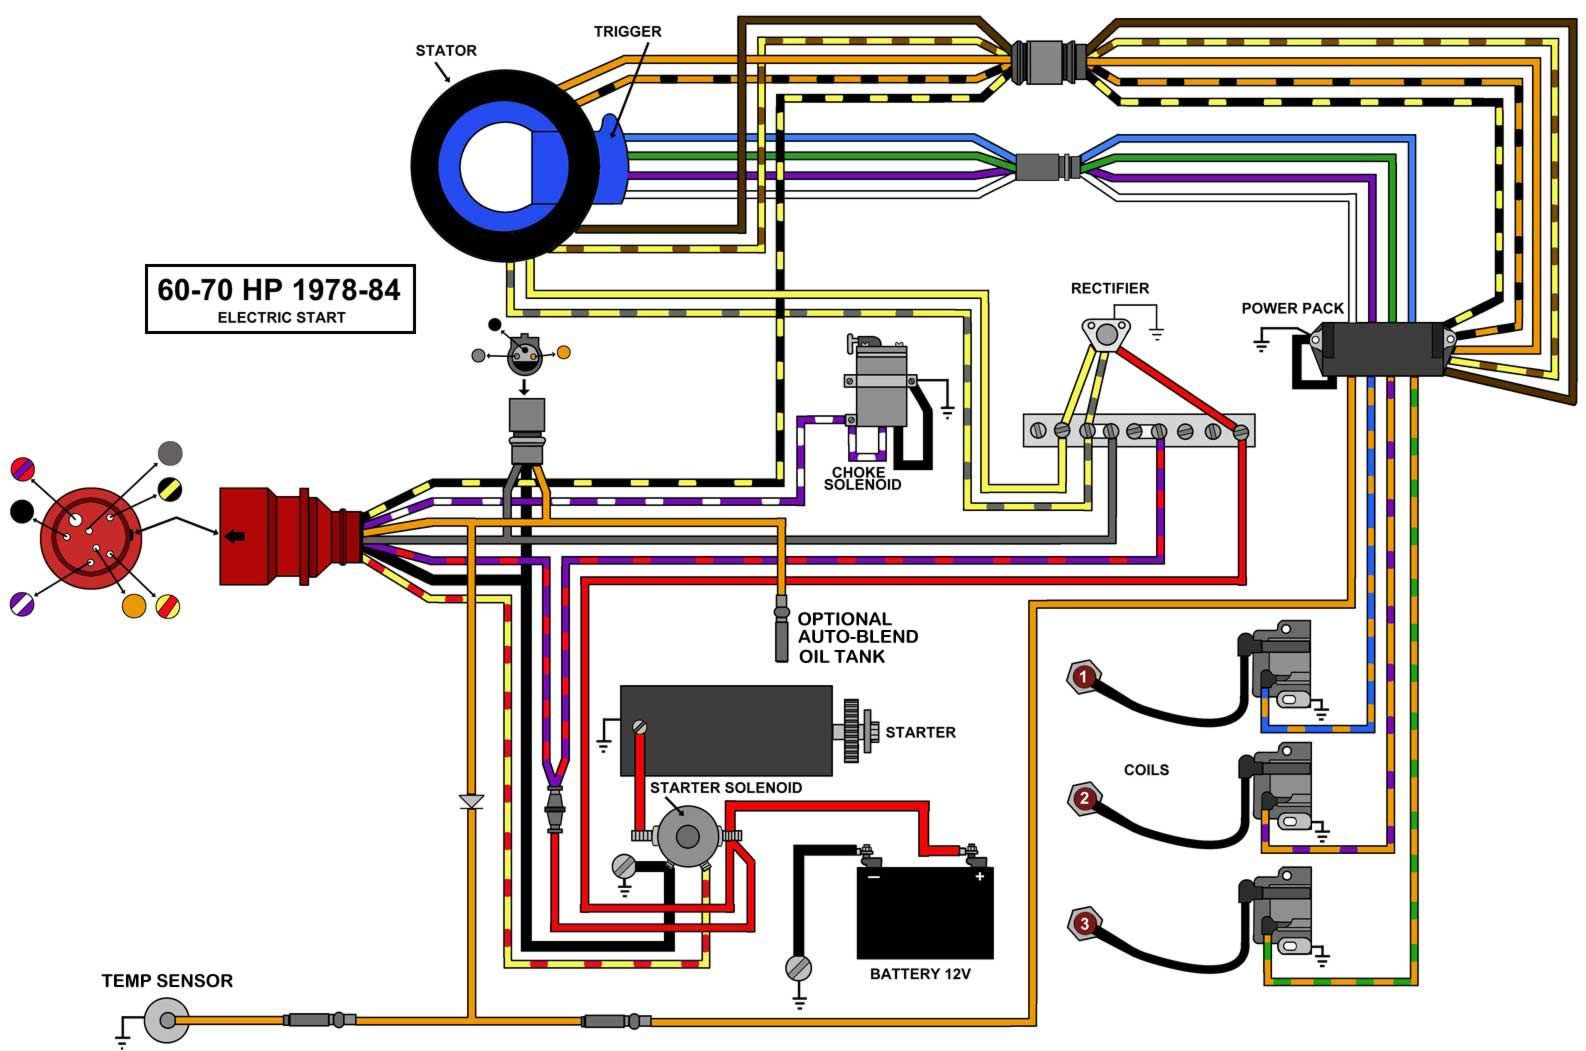 hight resolution of 1982 35 hp johnson outboard wiring harness free picture wiring johnson 50 hp outboard wiring harness